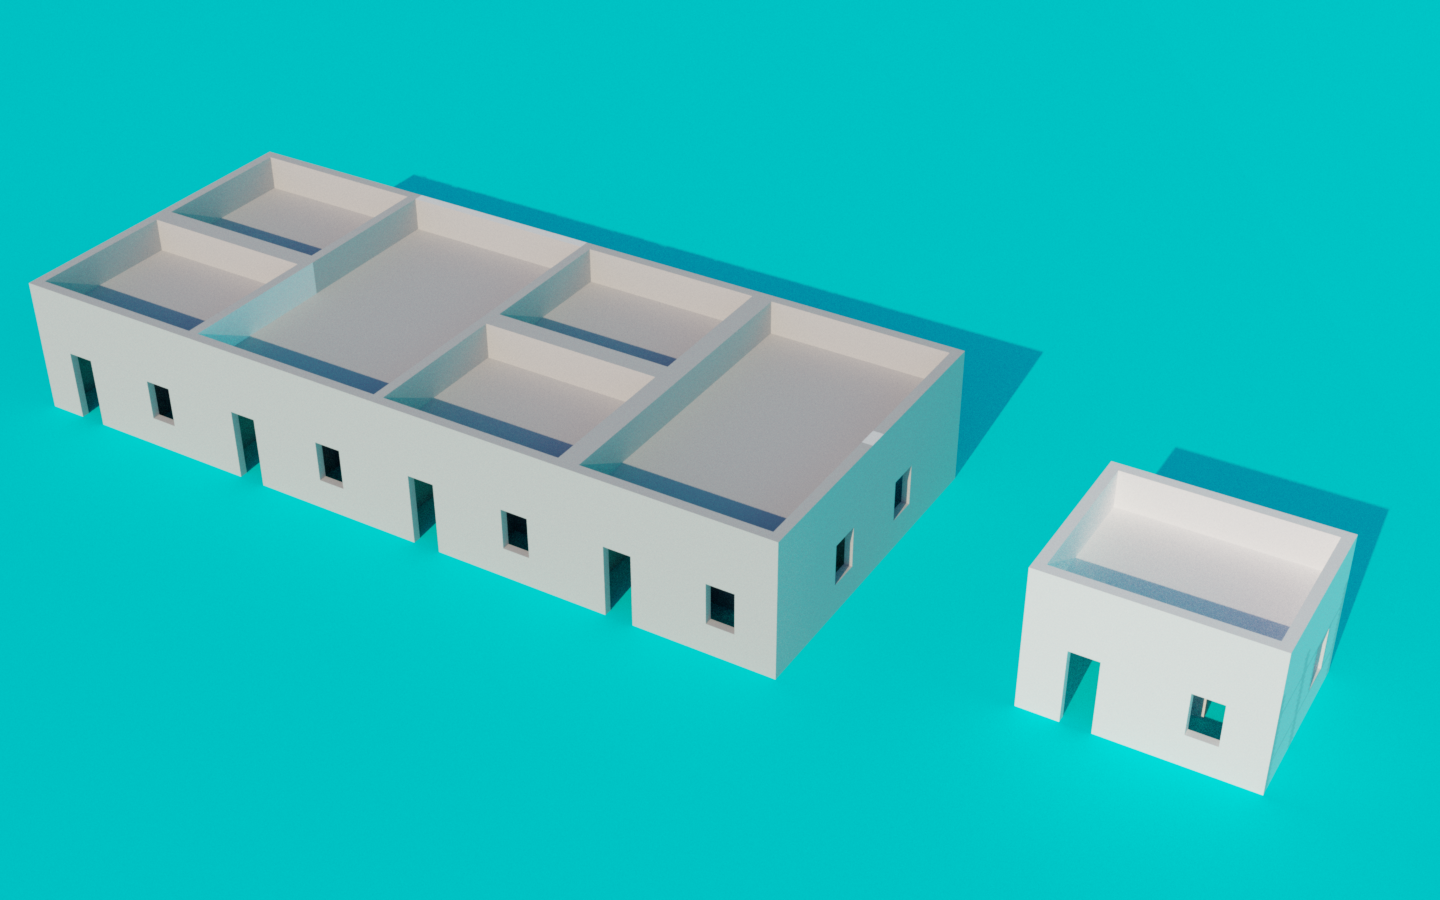 3D model to help illiterate users understand what we're talking about